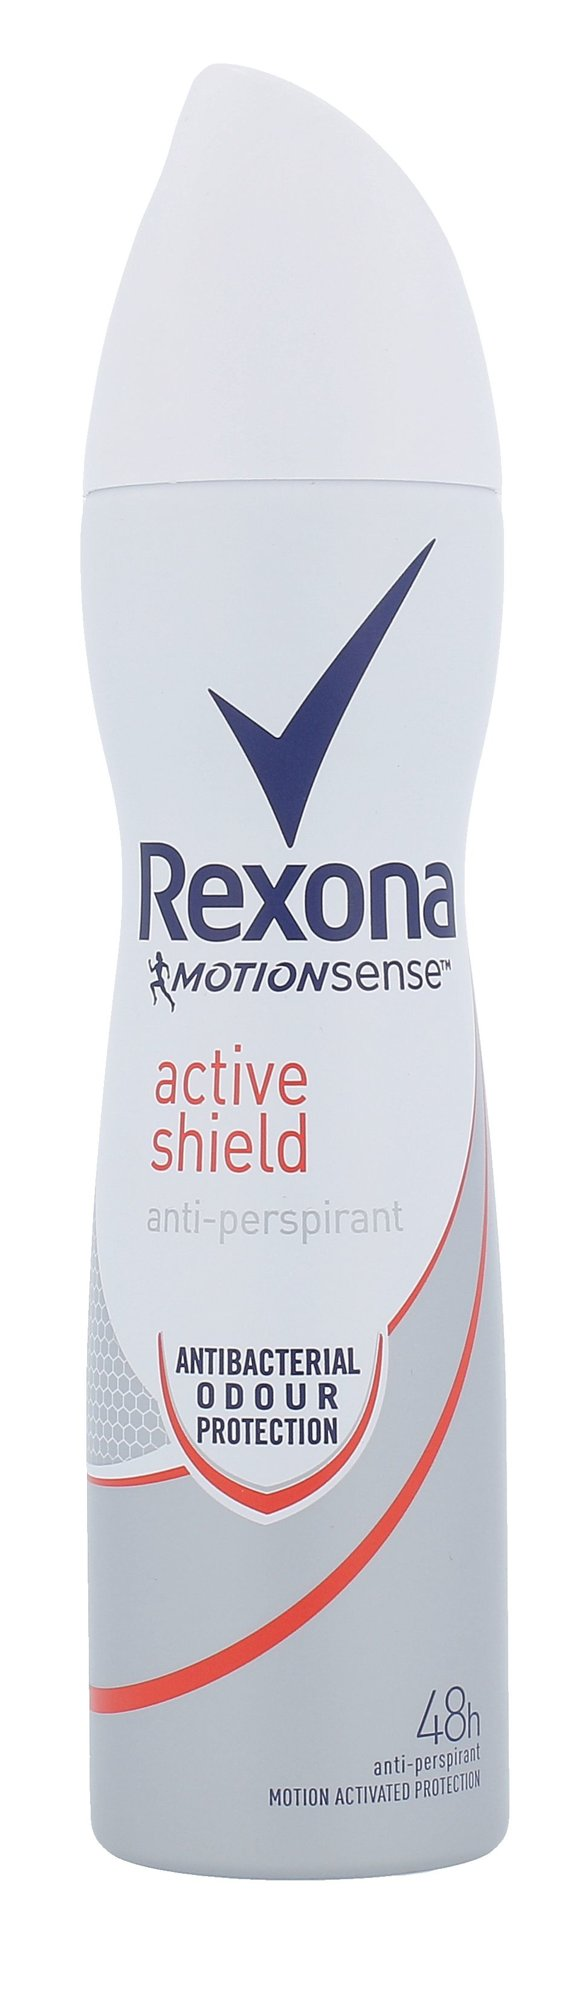 Rexona Active Shield Cosmetic 150ml